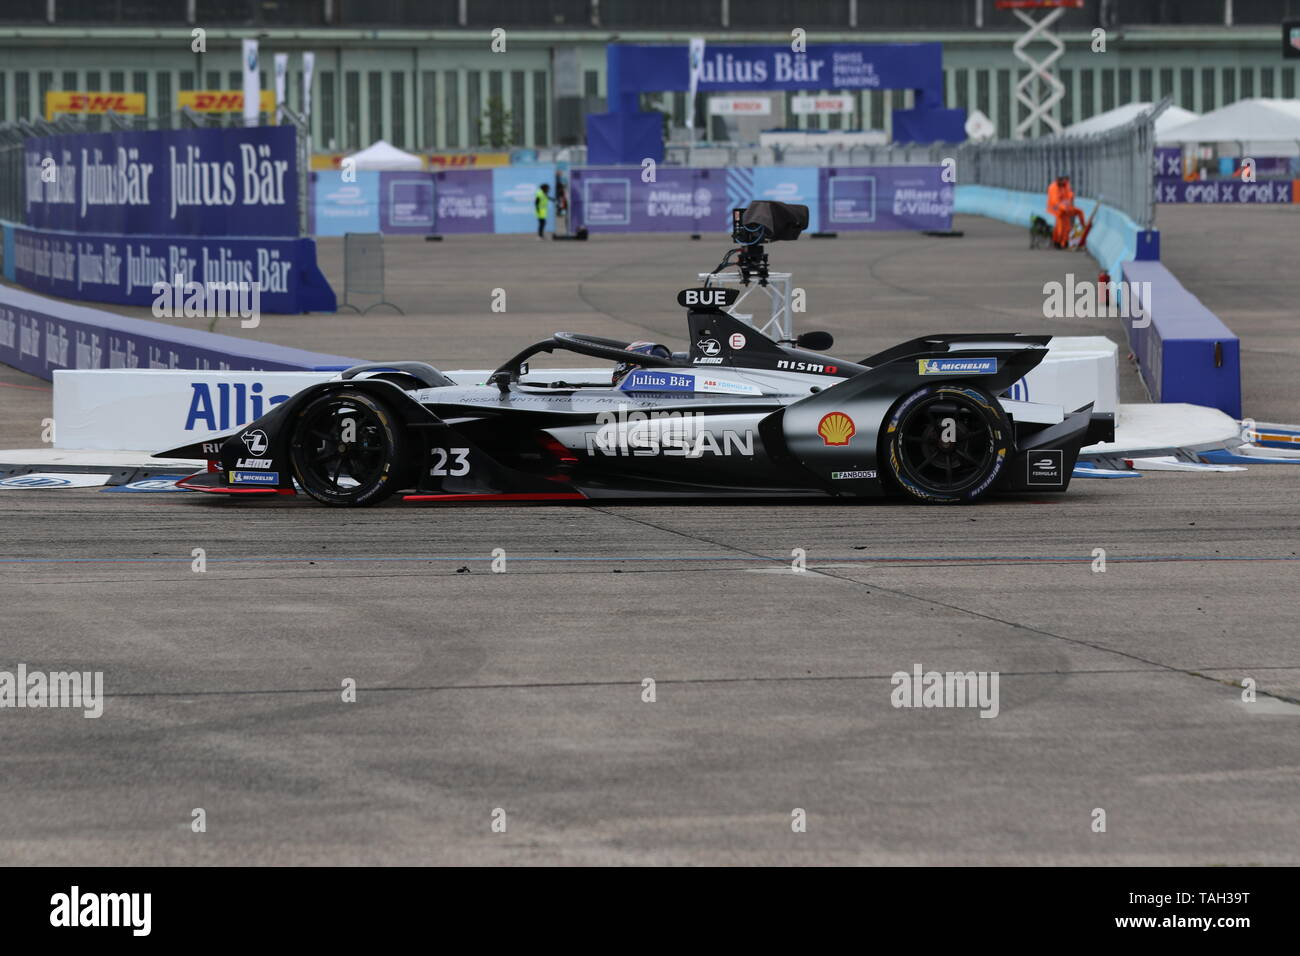 25.05.2019, Berlin, Germany. Sébastien Buemi at the race. Lucas Di Grassi from the Audi Sport Abt Schaeffler team wins the Berlin ePrix. Sébastien Buemi from the team Nissan e.dams wins the second place and Jean-Eric Vergne from the team DS TECHEETAH wins the third place. The Formula E will be on the 25th of May 2019 for the fifth time in Berlin. The electric racing series 2018/2018 will take place at the former Tempelhof Airport. - Stock Image